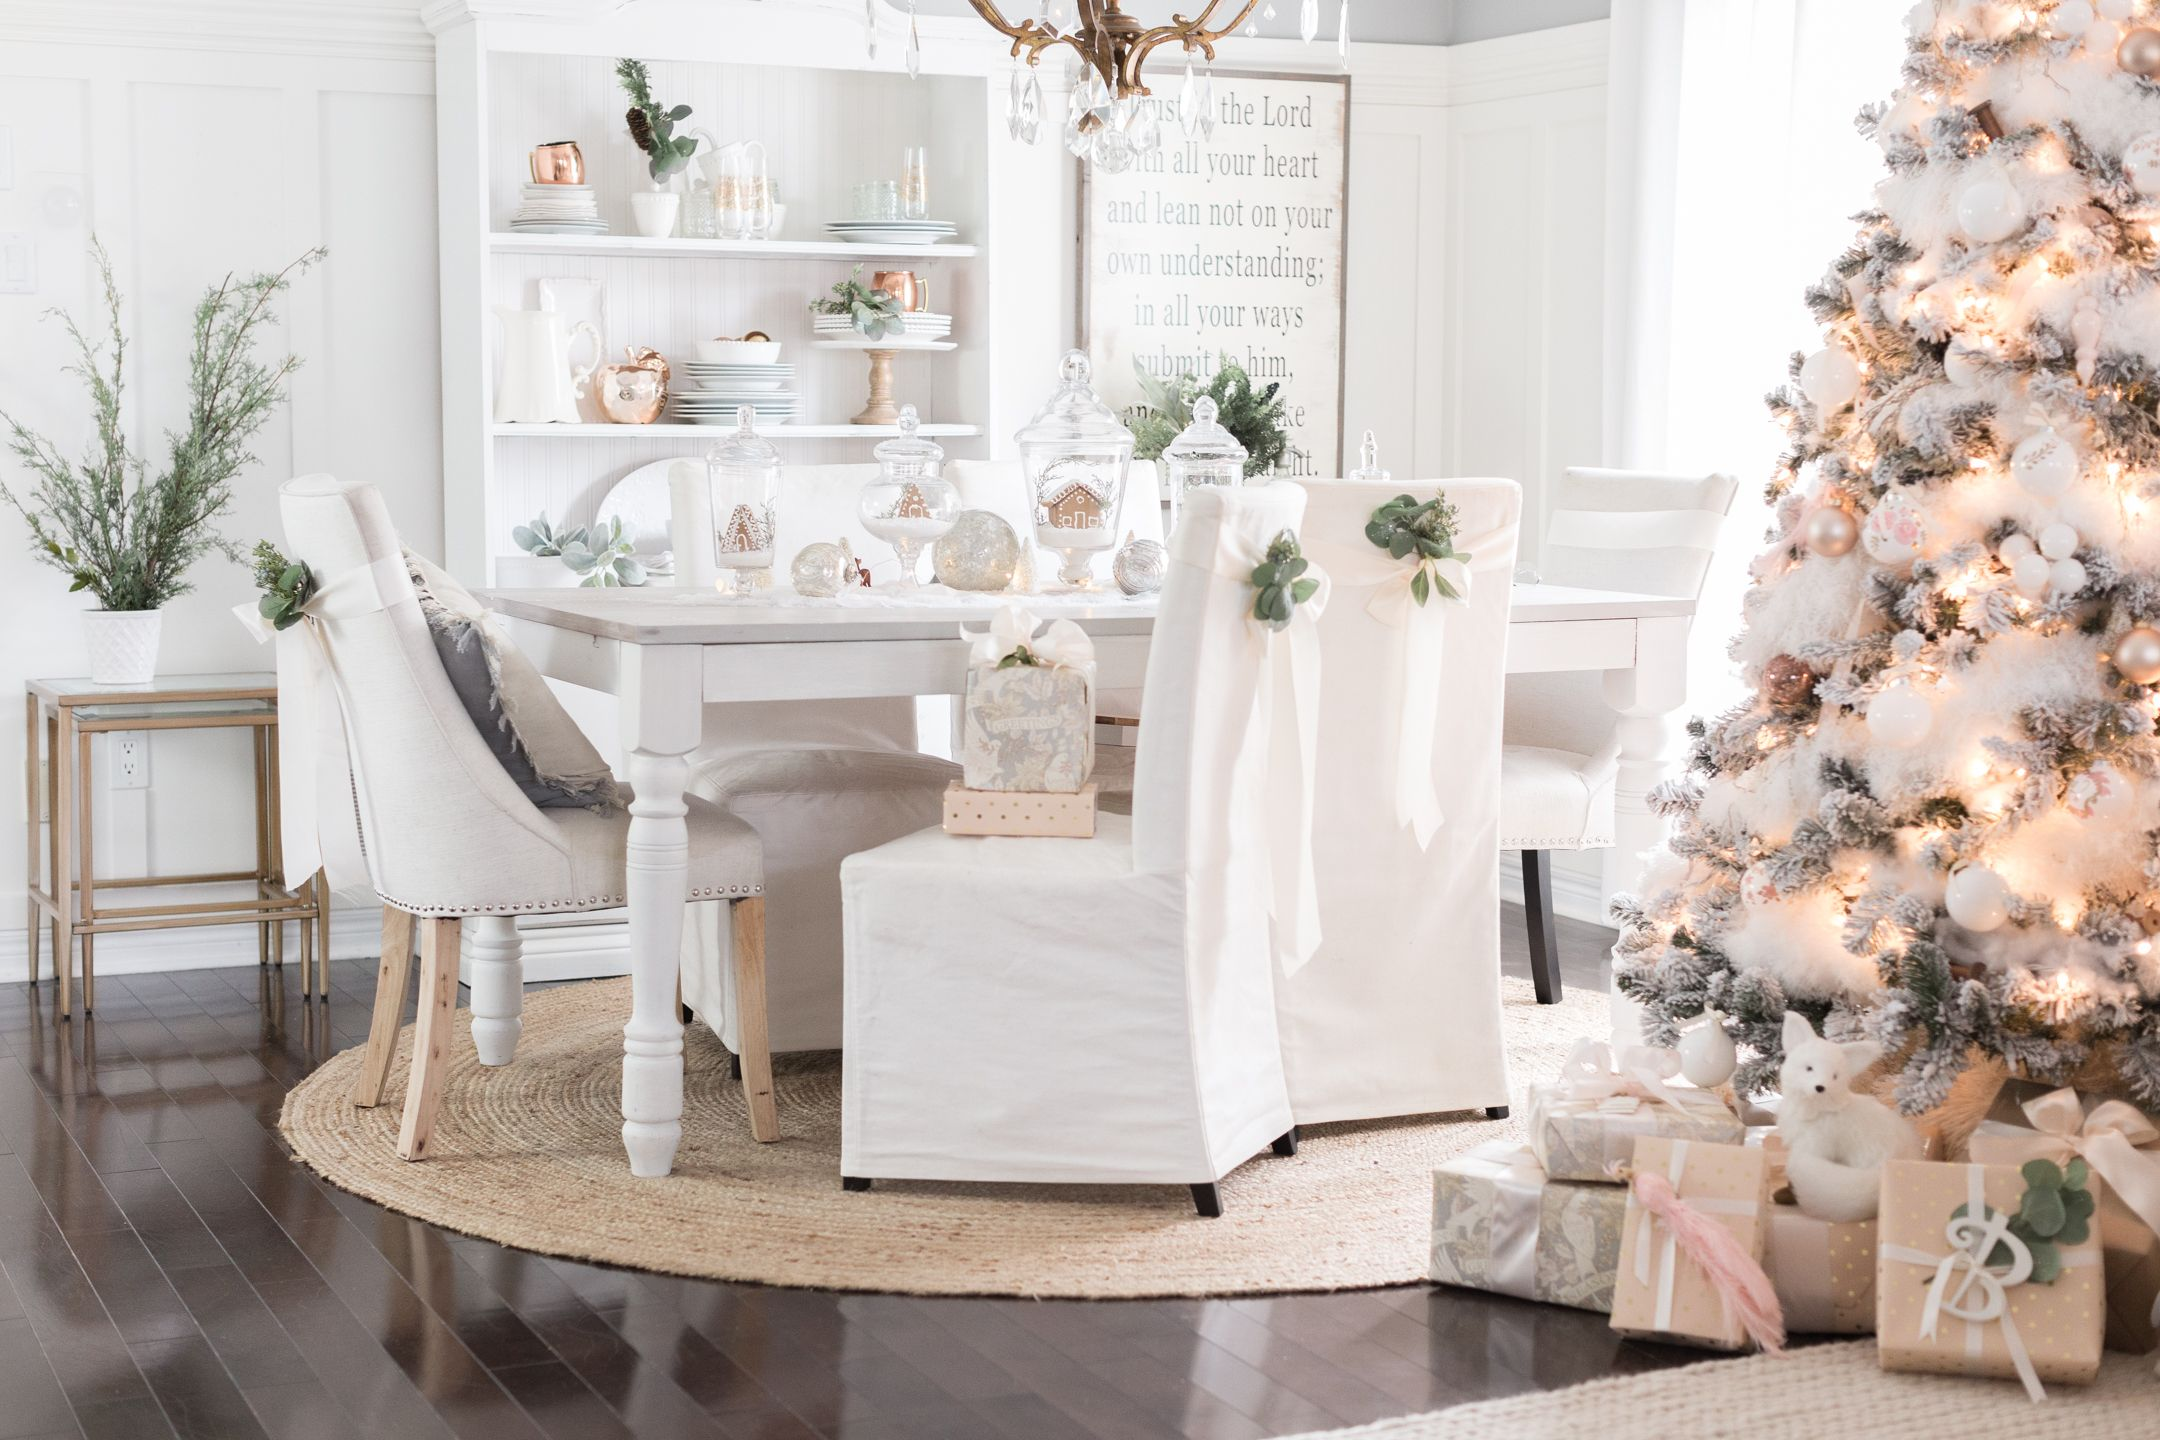 27 easy christmas home decor ideas small space apartment decoration for holidays - Dining Room Christmas Decorations